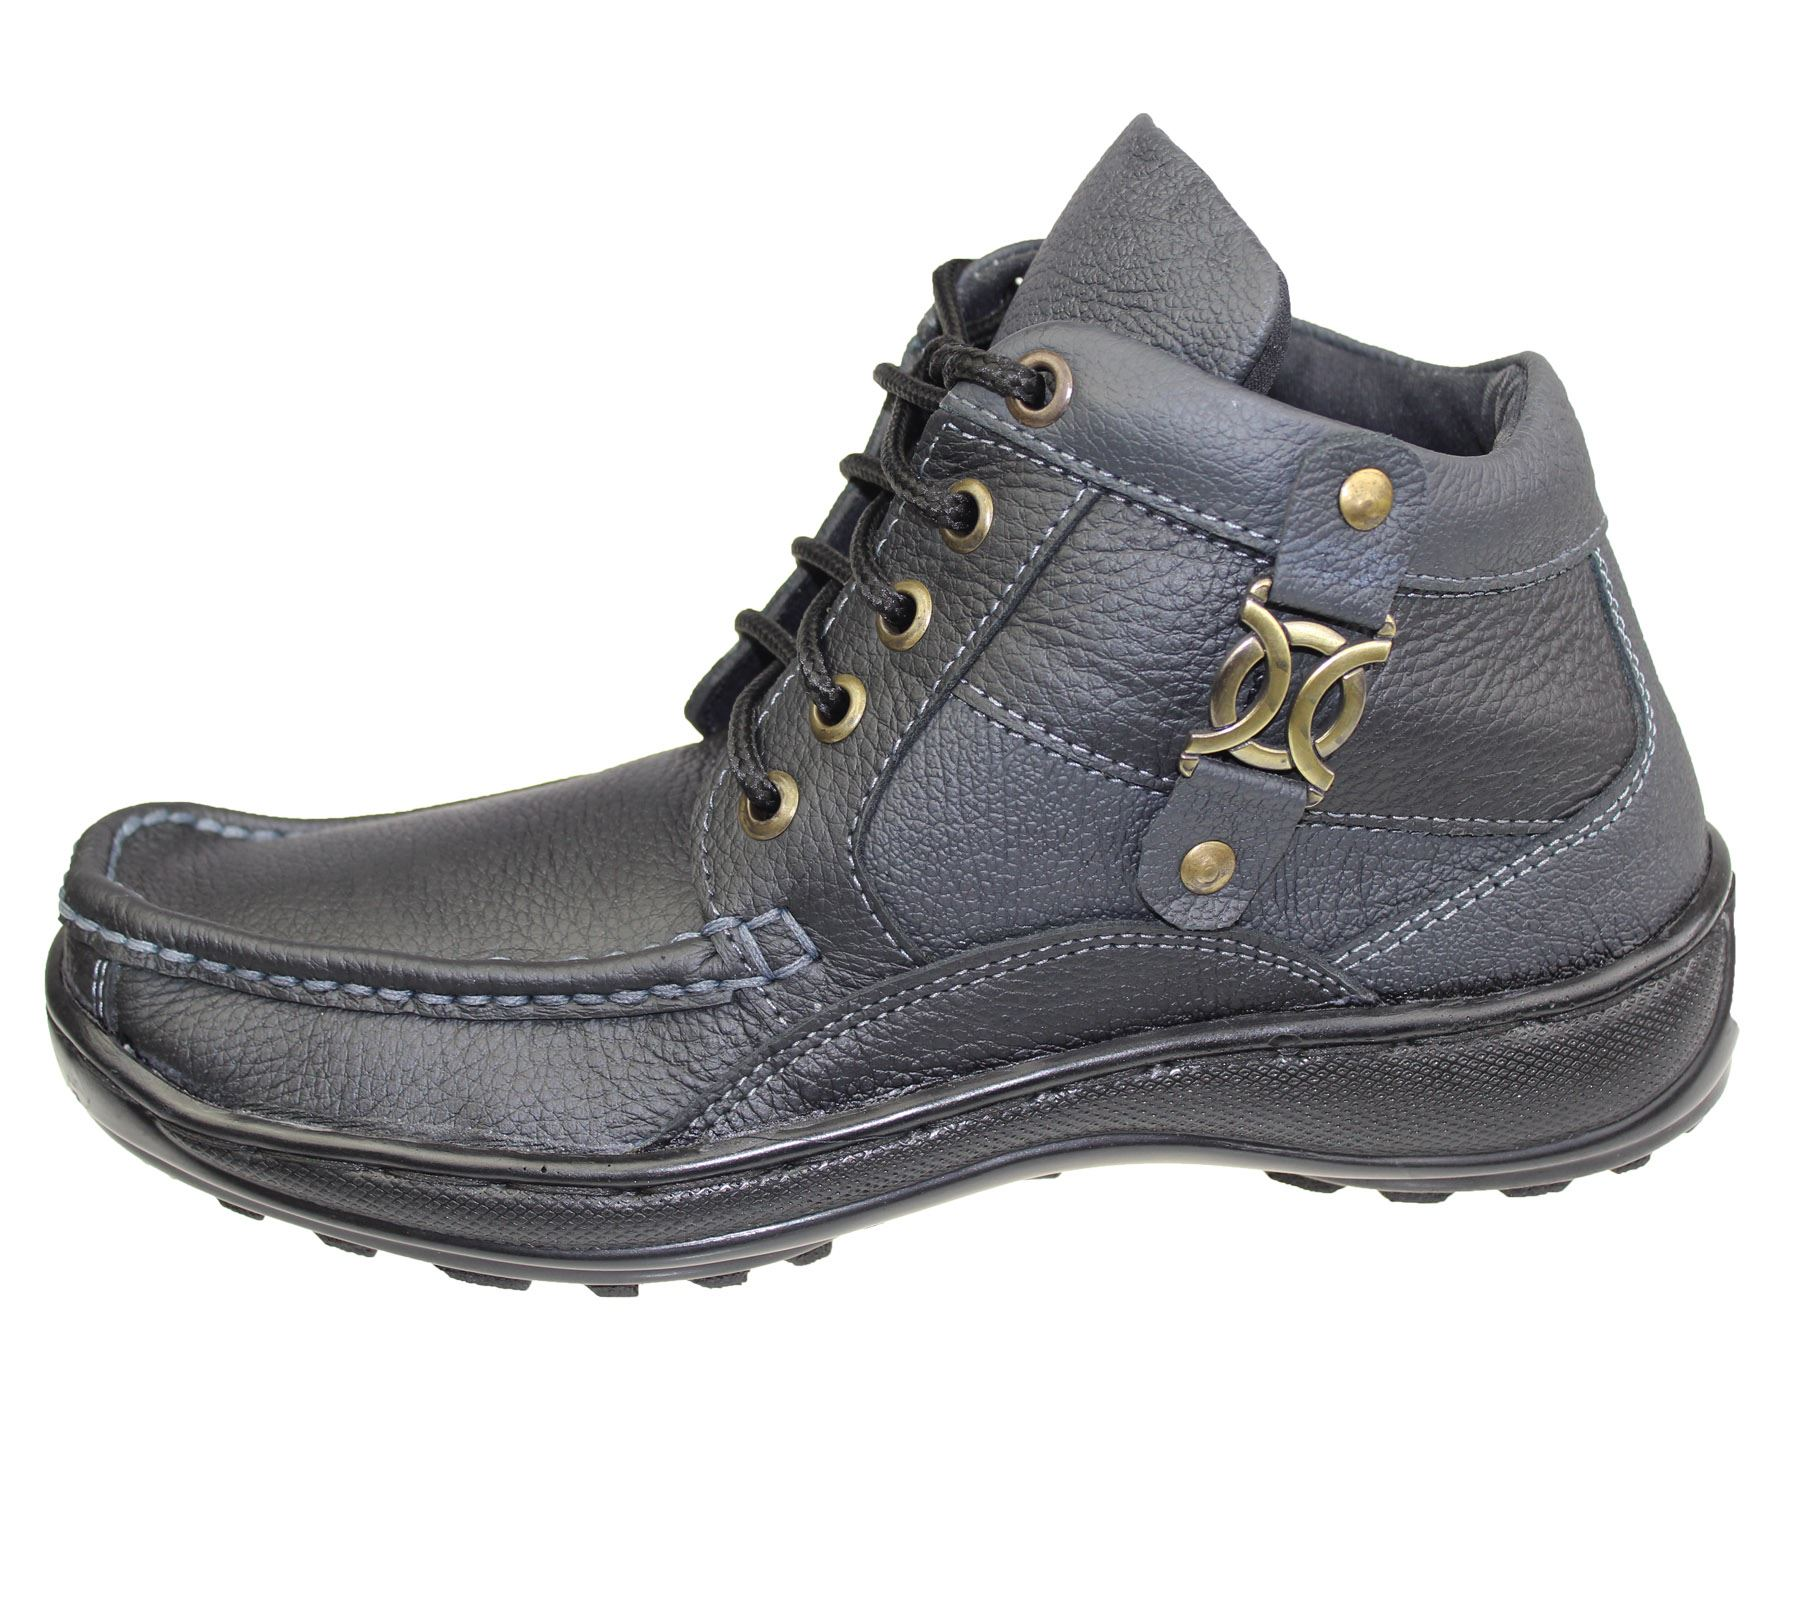 mens leather work boots hig top ankle hiking trail biker